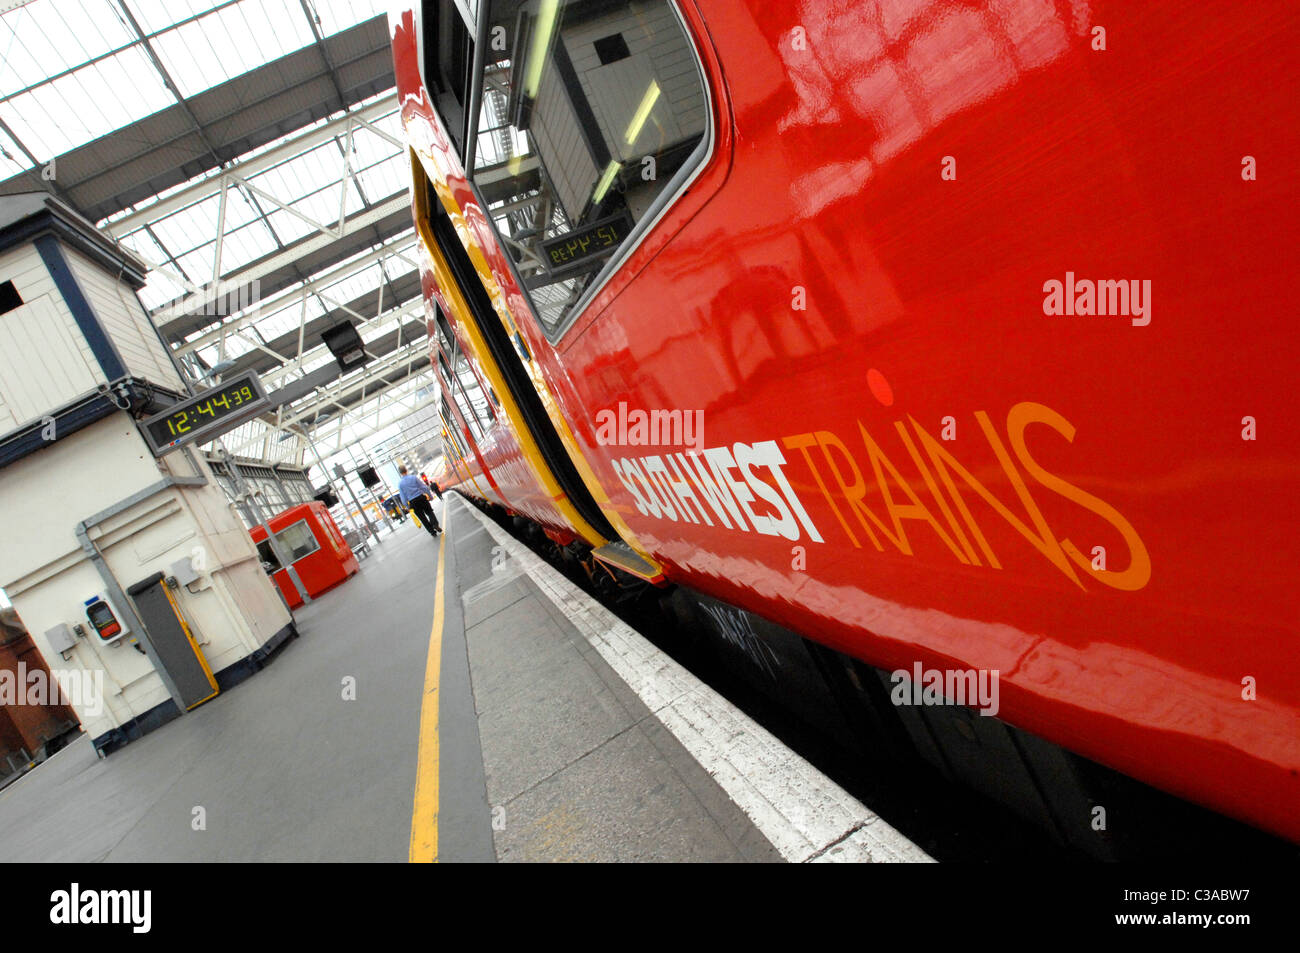 Southwest Trains at Waterloo Station. - Stock Image